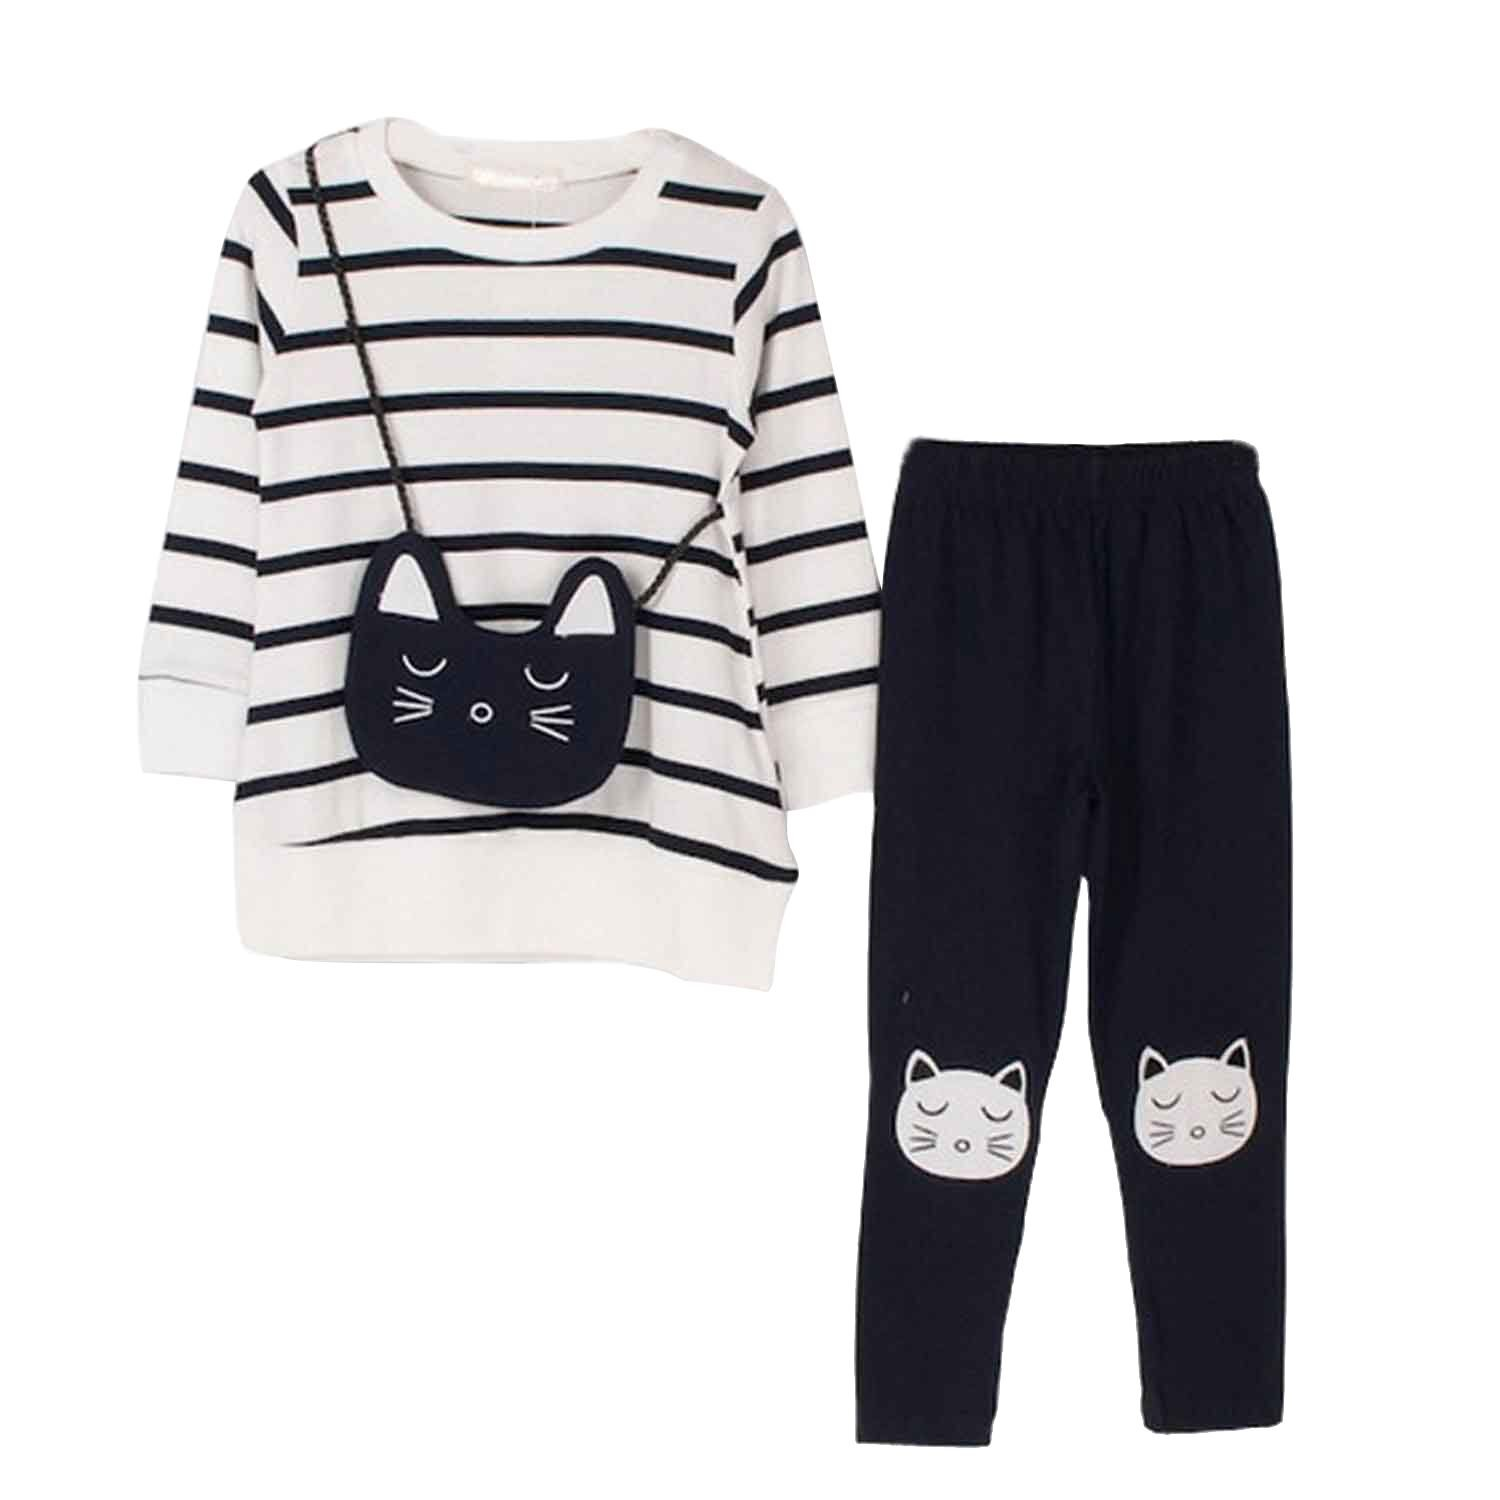 little Girls Cute Long Sleeve Top   Pant Clothes Set White Cat Tag 110  4-5 Years by WAYNE FINKELSTEIN (Image #1)